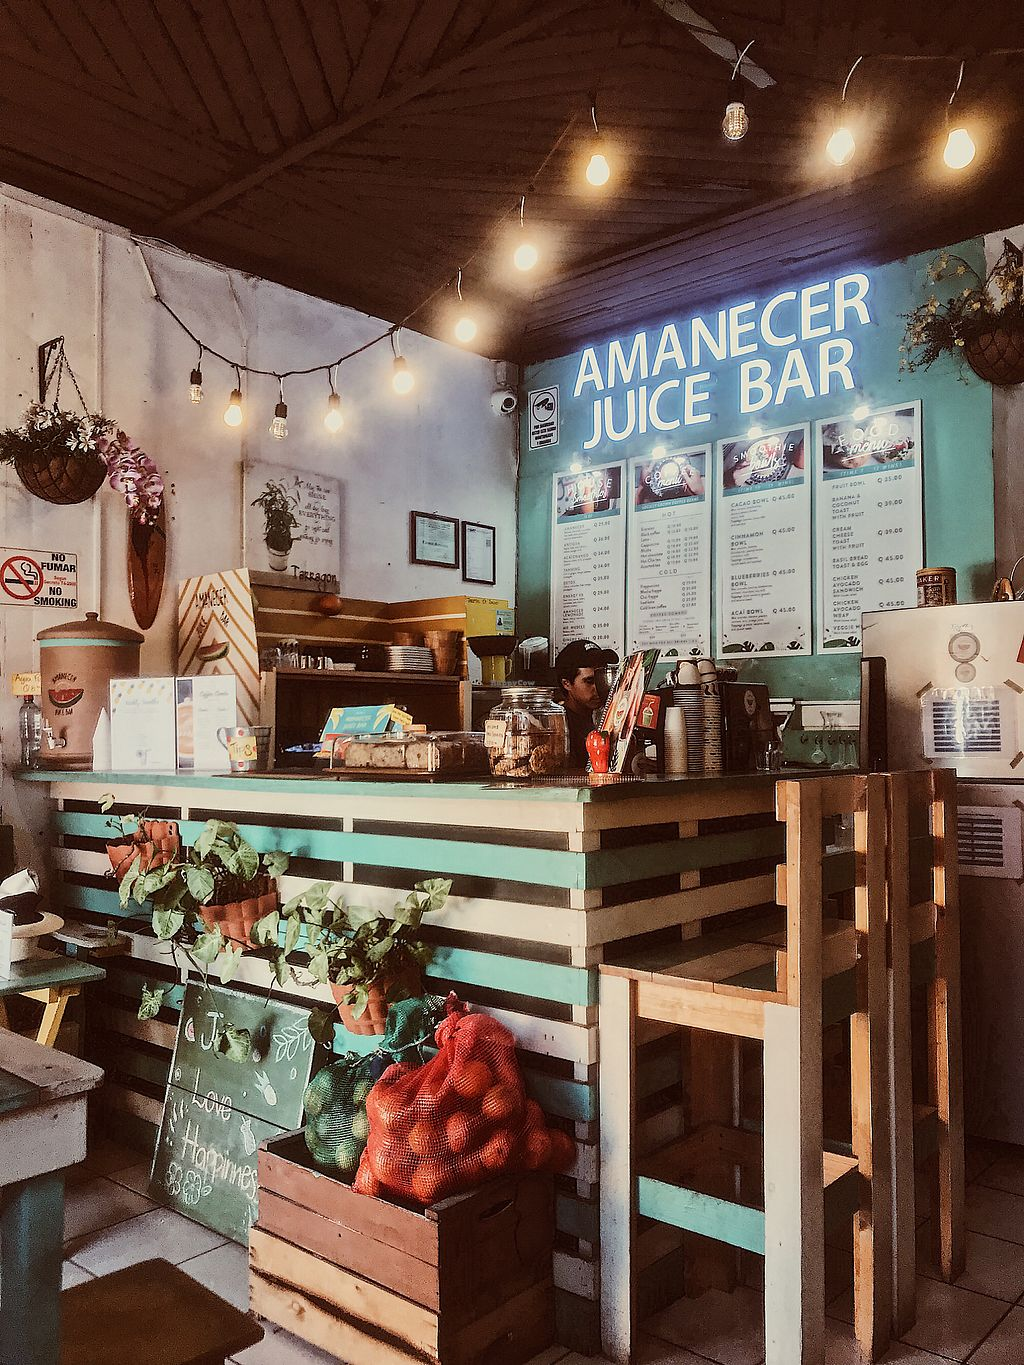 "Photo of Amanecer Juice Bar  by <a href=""/members/profile/IndreArbataityte"">IndreArbataityte</a> <br/>Juice bar <br/> February 22, 2018  - <a href='/contact/abuse/image/75725/362545'>Report</a>"